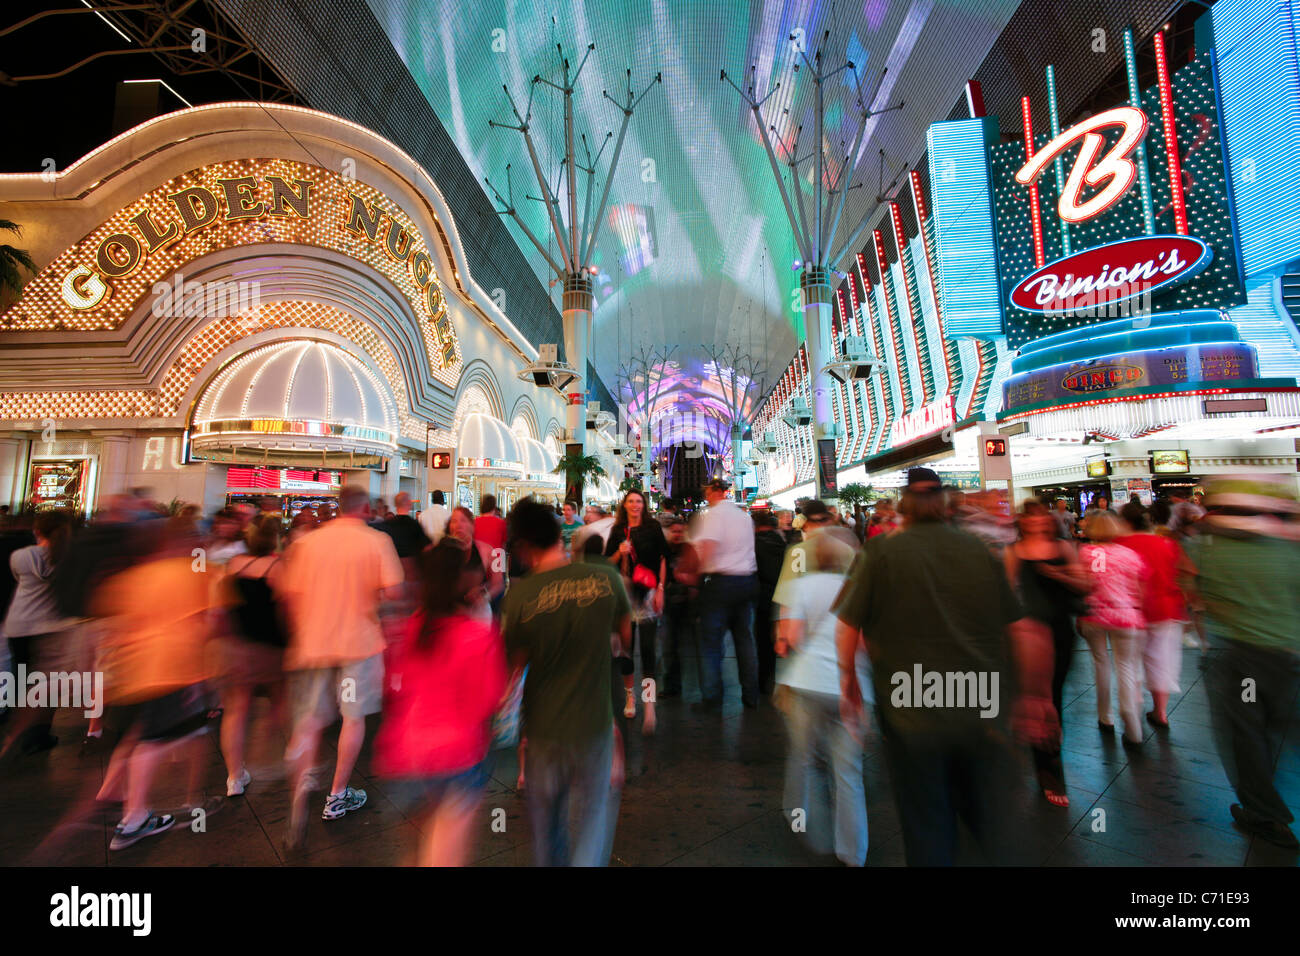 United States of America, Nevada, Las Vegas, The Fremont Street Experience in Downtown Las Vegas - Stock Image